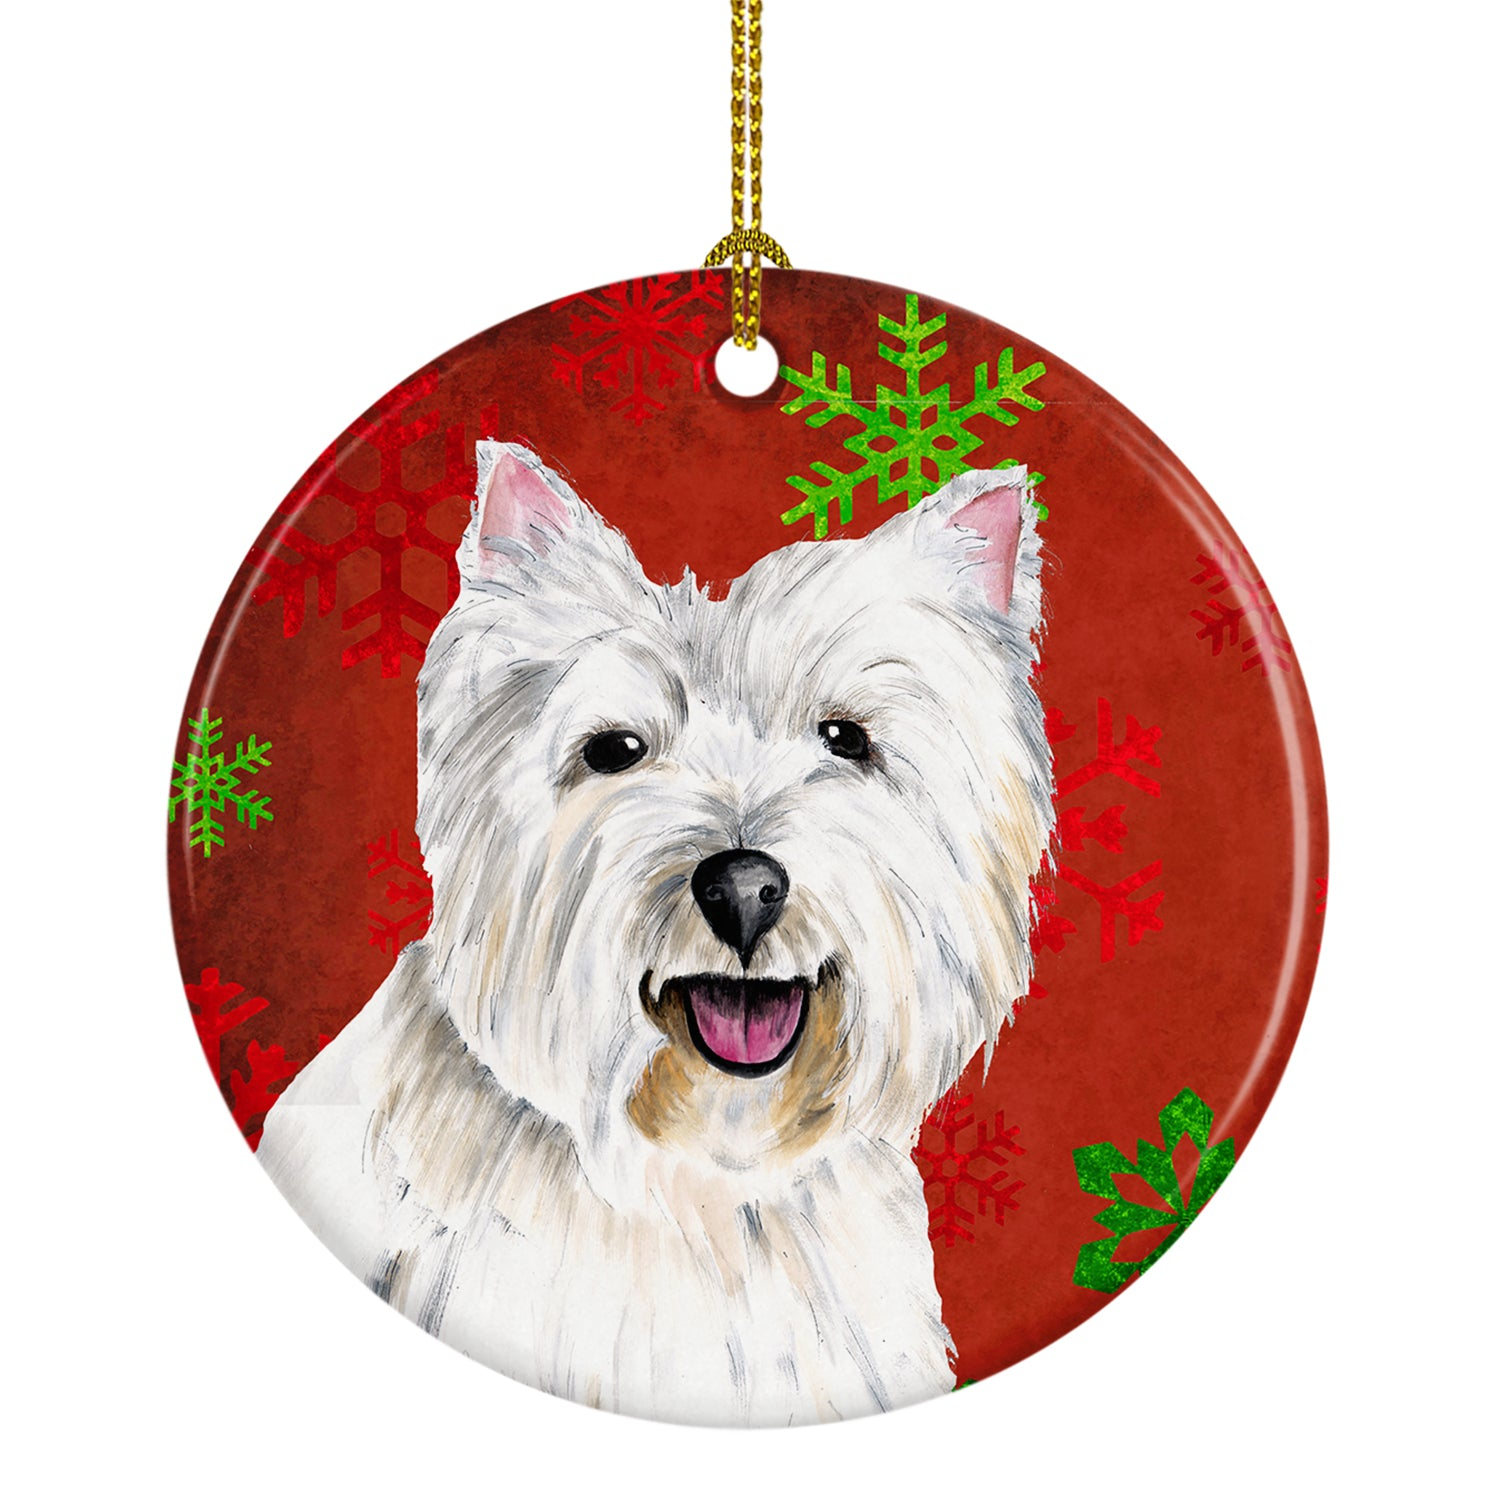 Westie Red Snowflakes Holiday Christmas Ceramic Ornament SC9410 by Caroline's Treasures